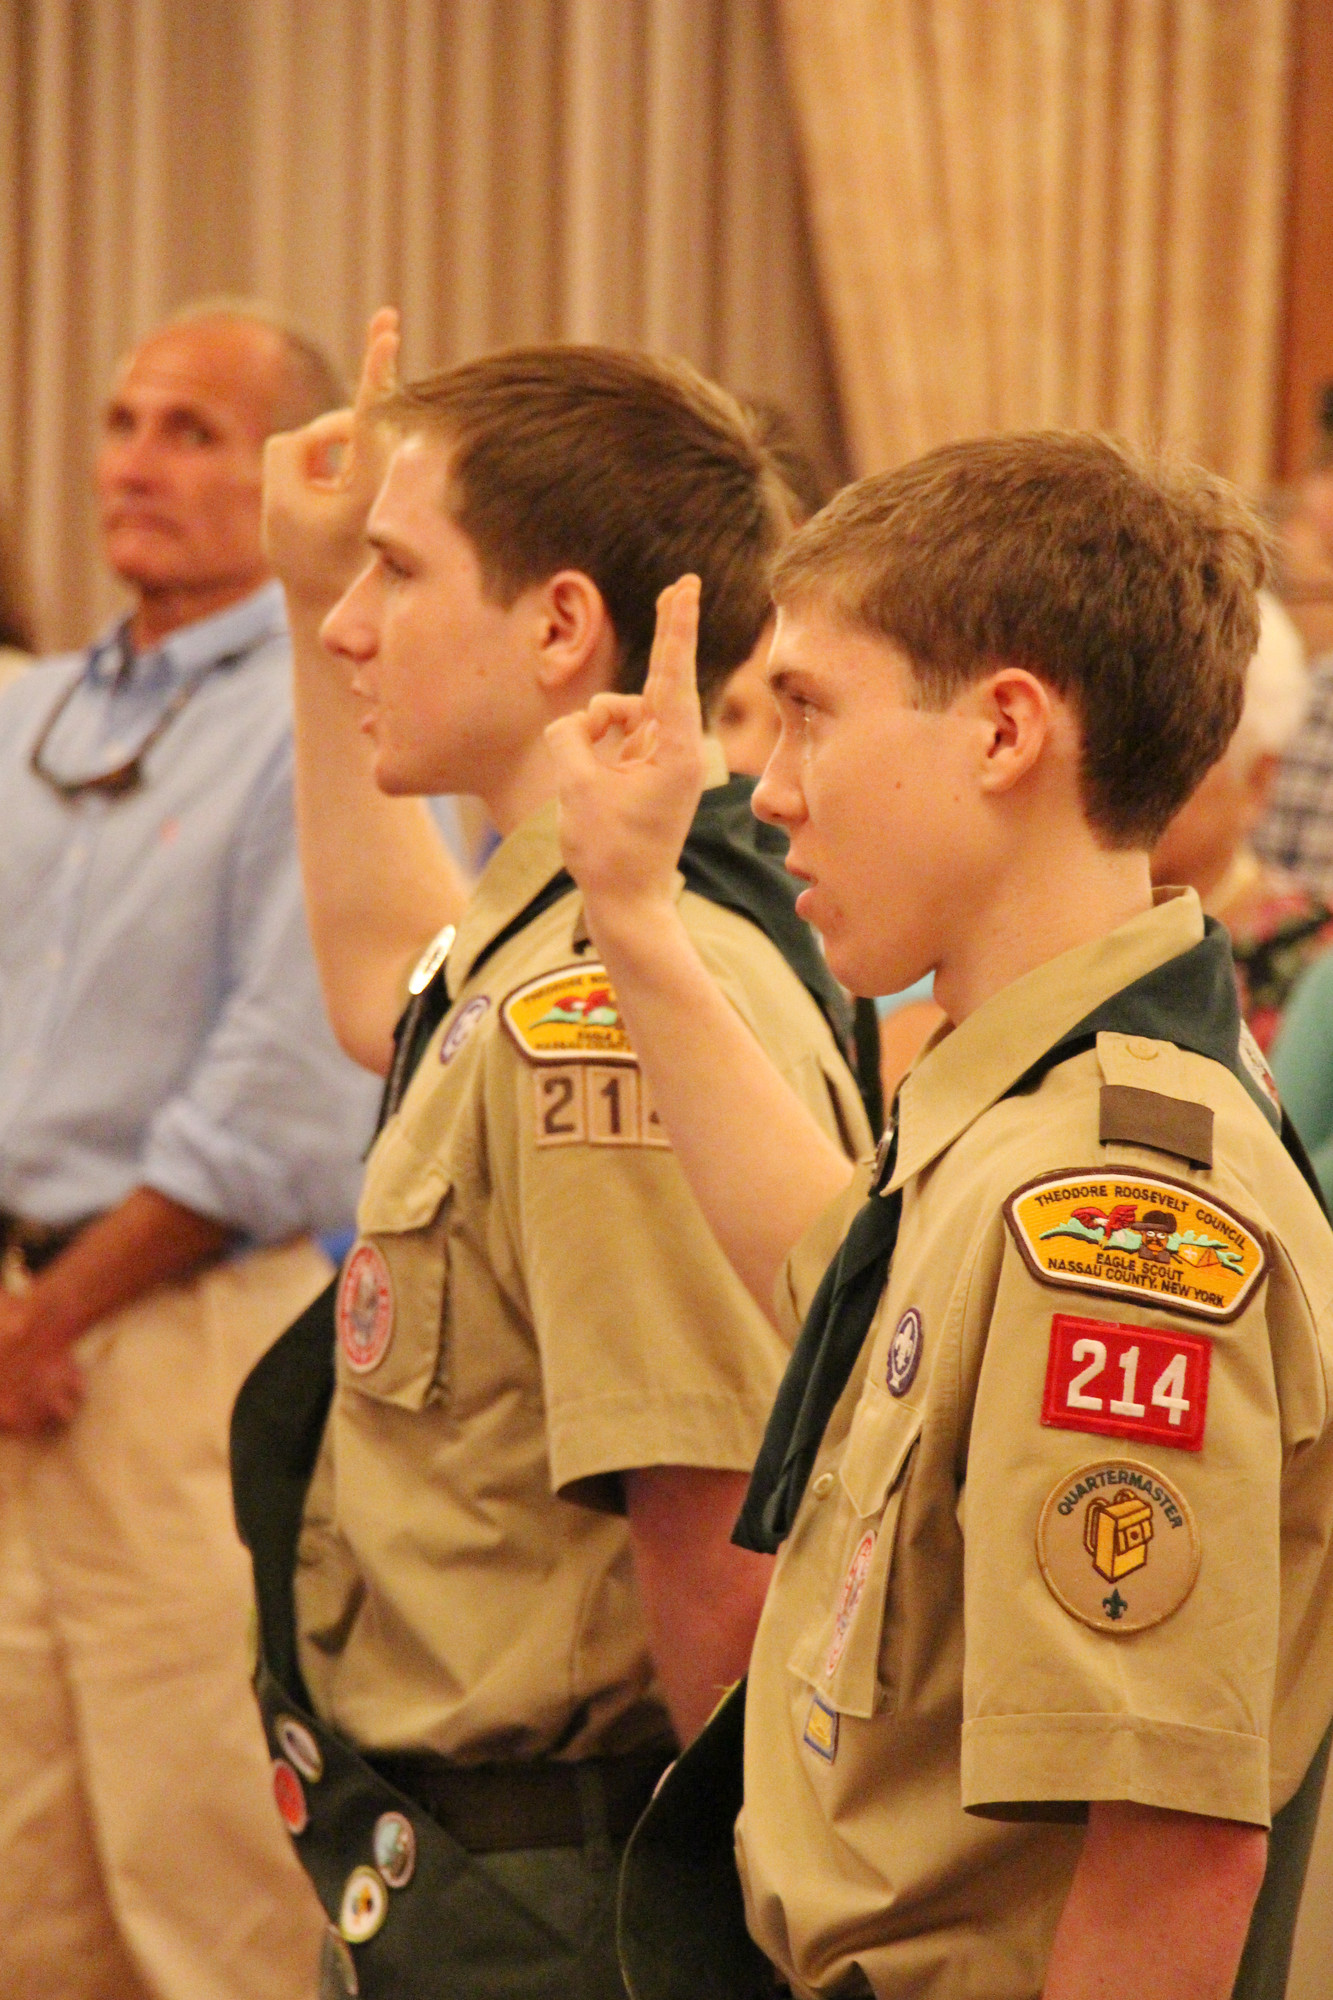 Robert Edward Hitscherich and David Joseph Santarelli took the Scout Pledge.